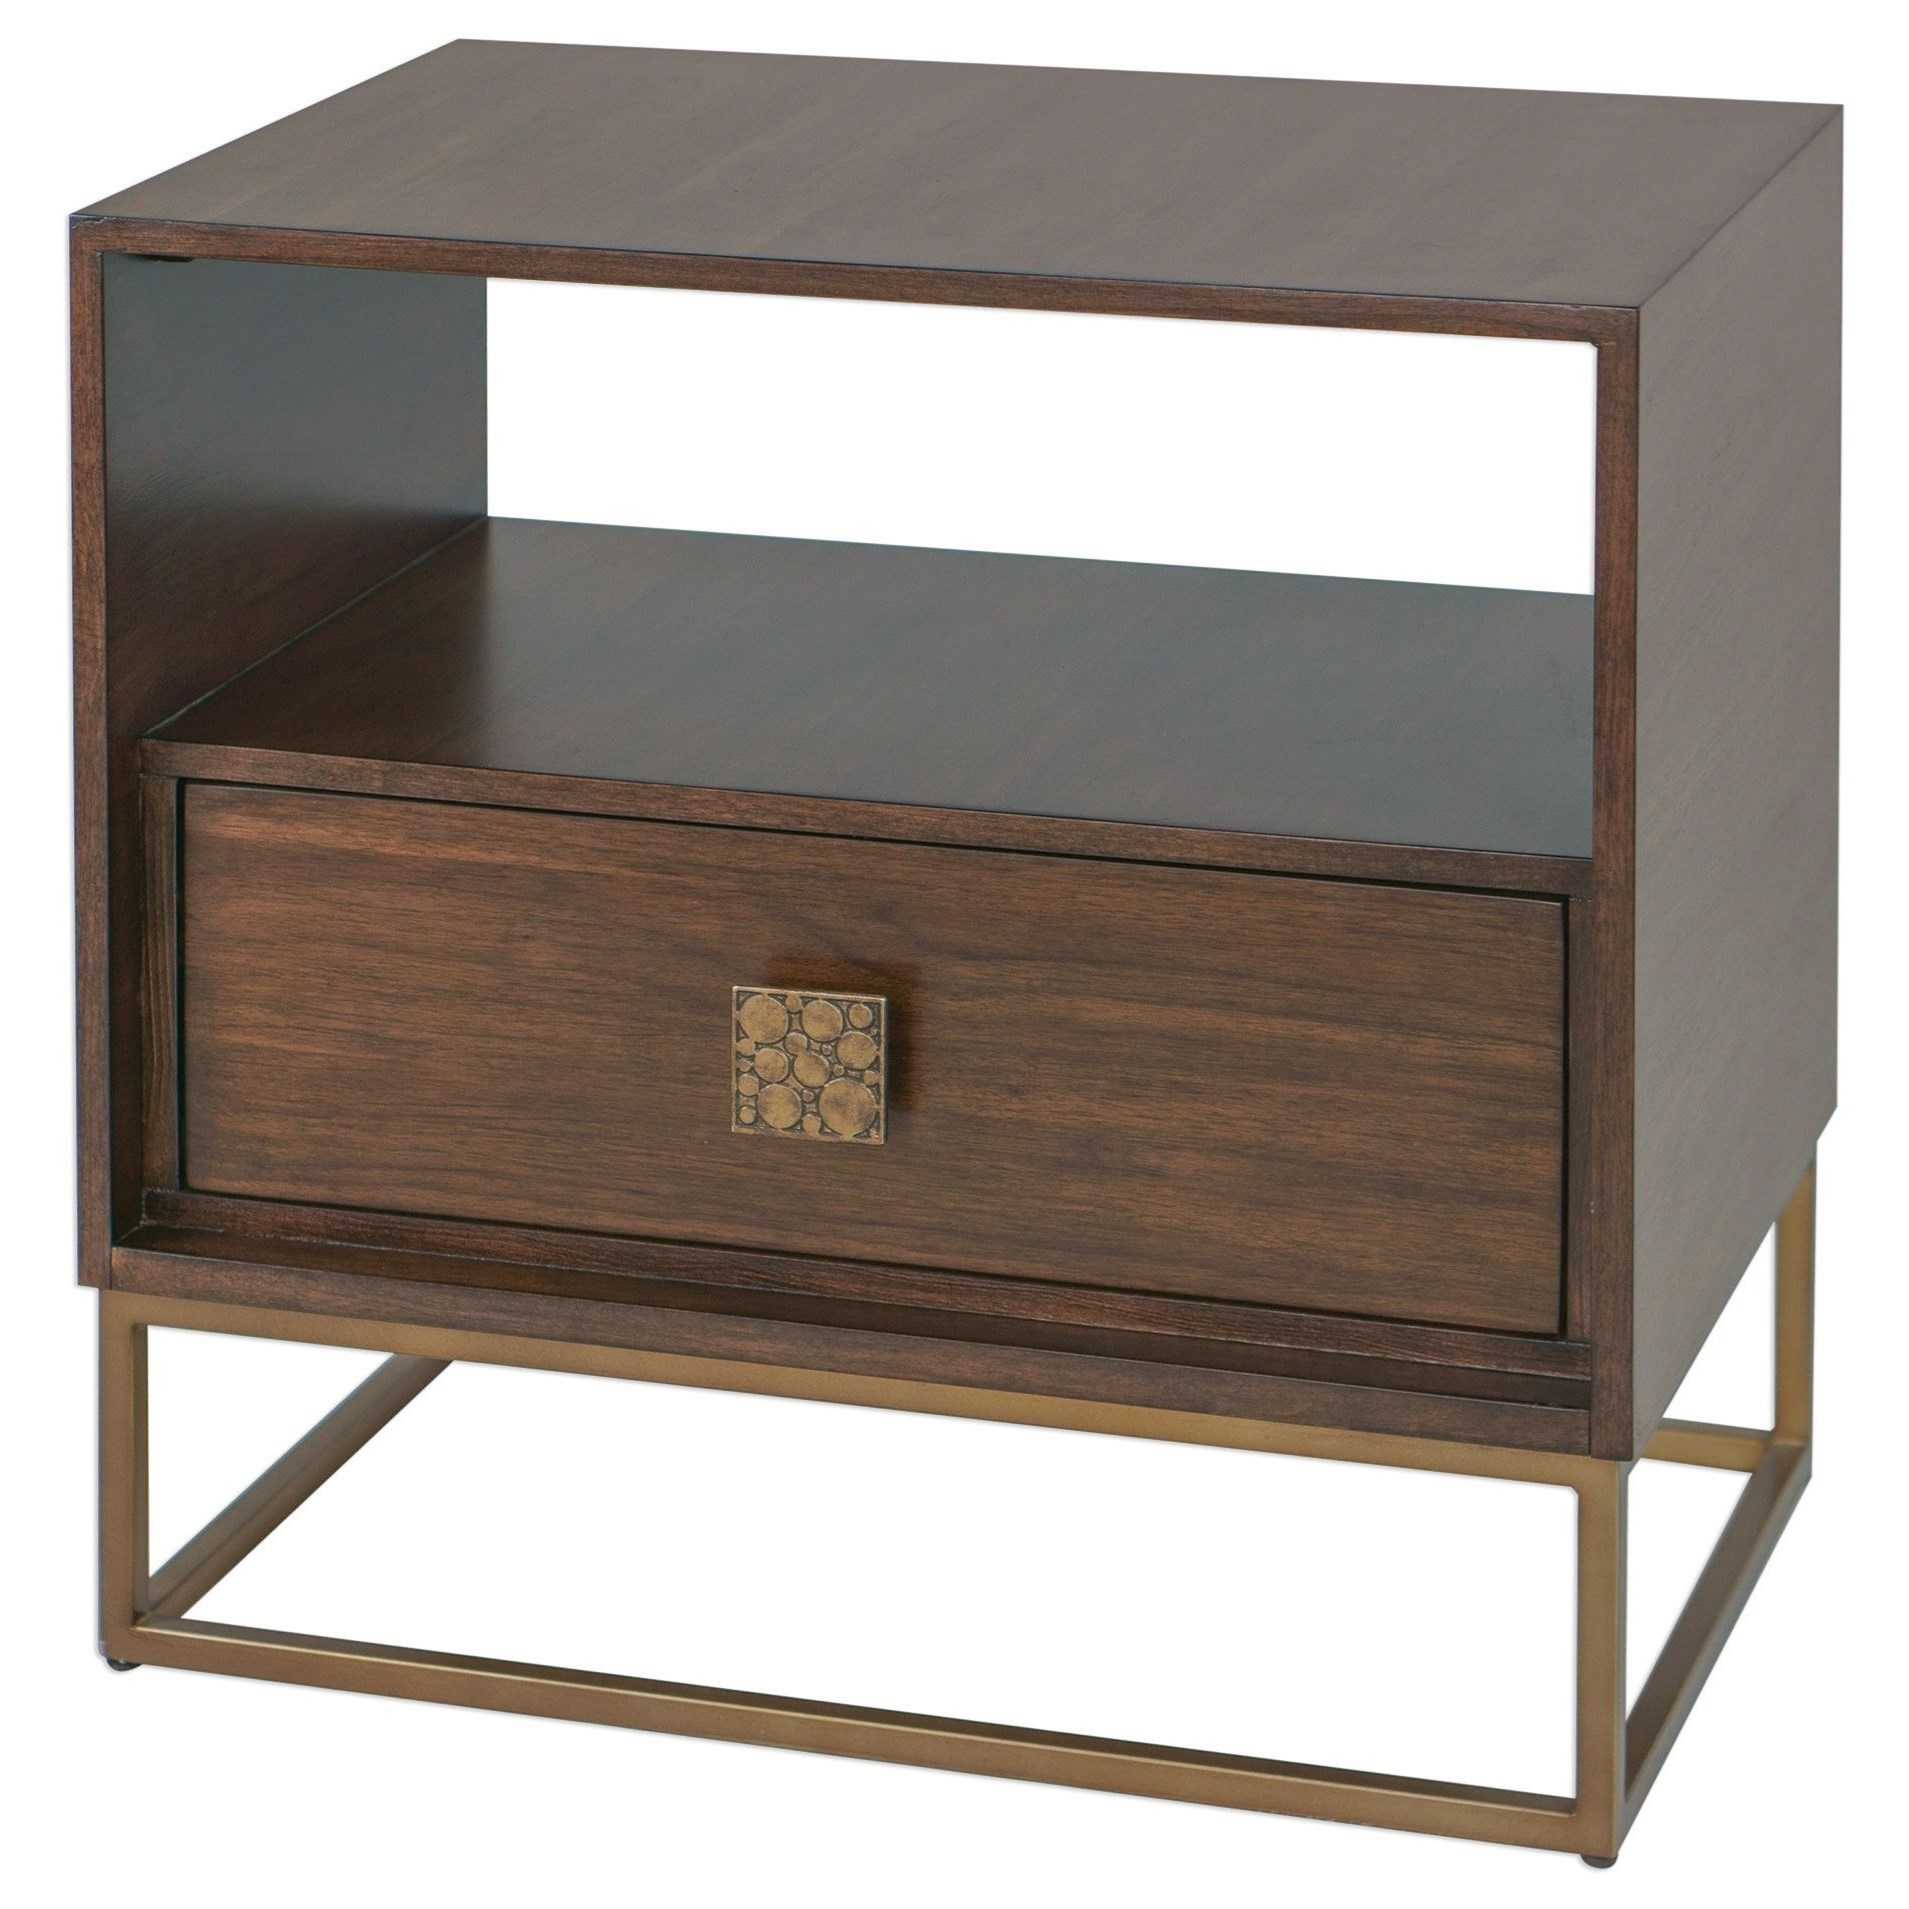 Accent Furniture - Occasional Tables Bexley Walnut Side Table by Uttermost at O'Dunk & O'Bright Furniture